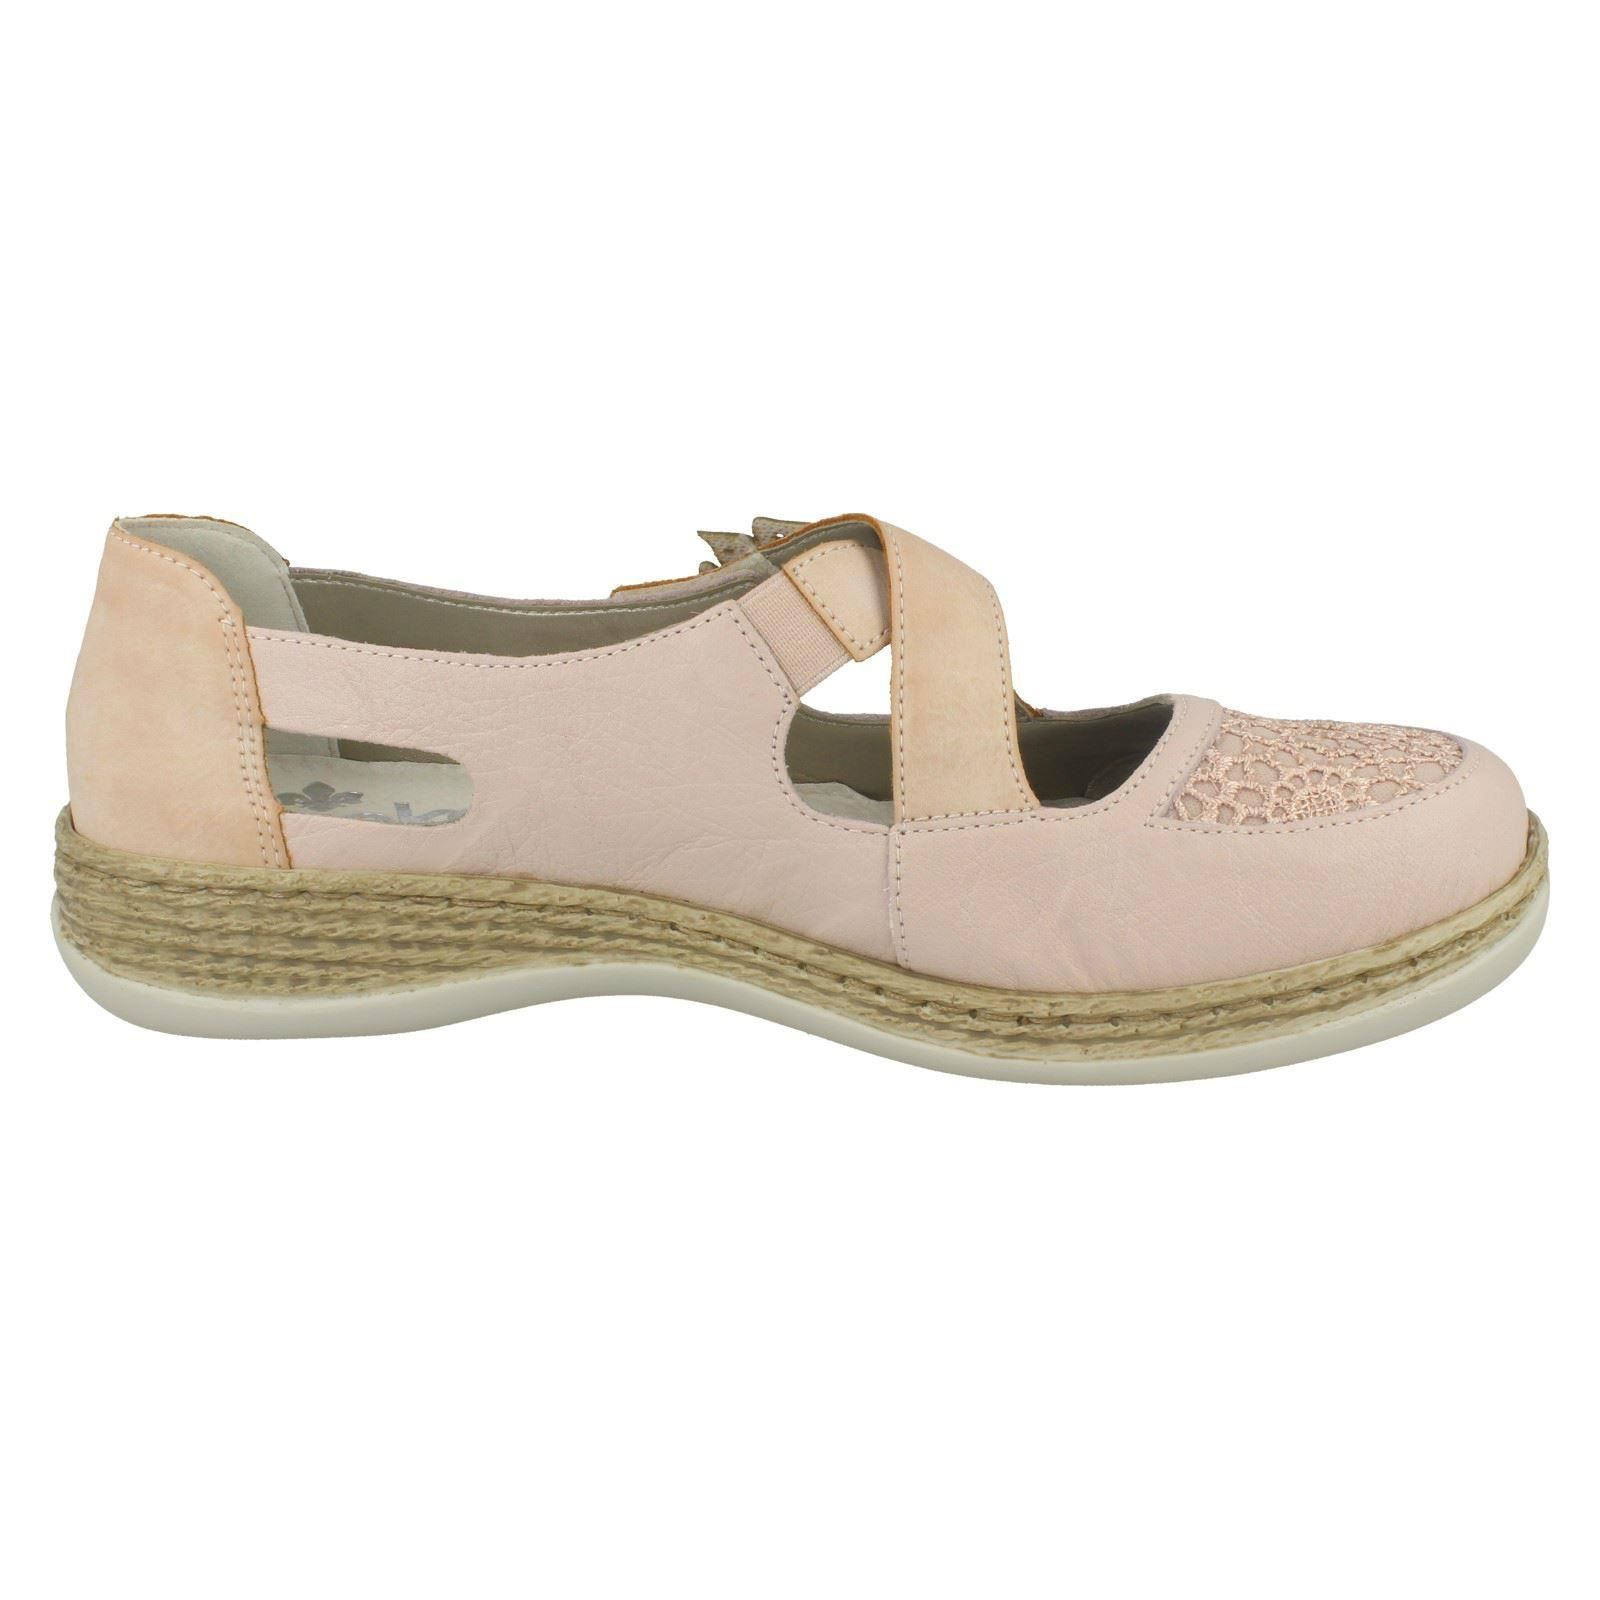 Ladies Rieker Cross Strap Casual Casual Casual shoes 464H0 255ef0